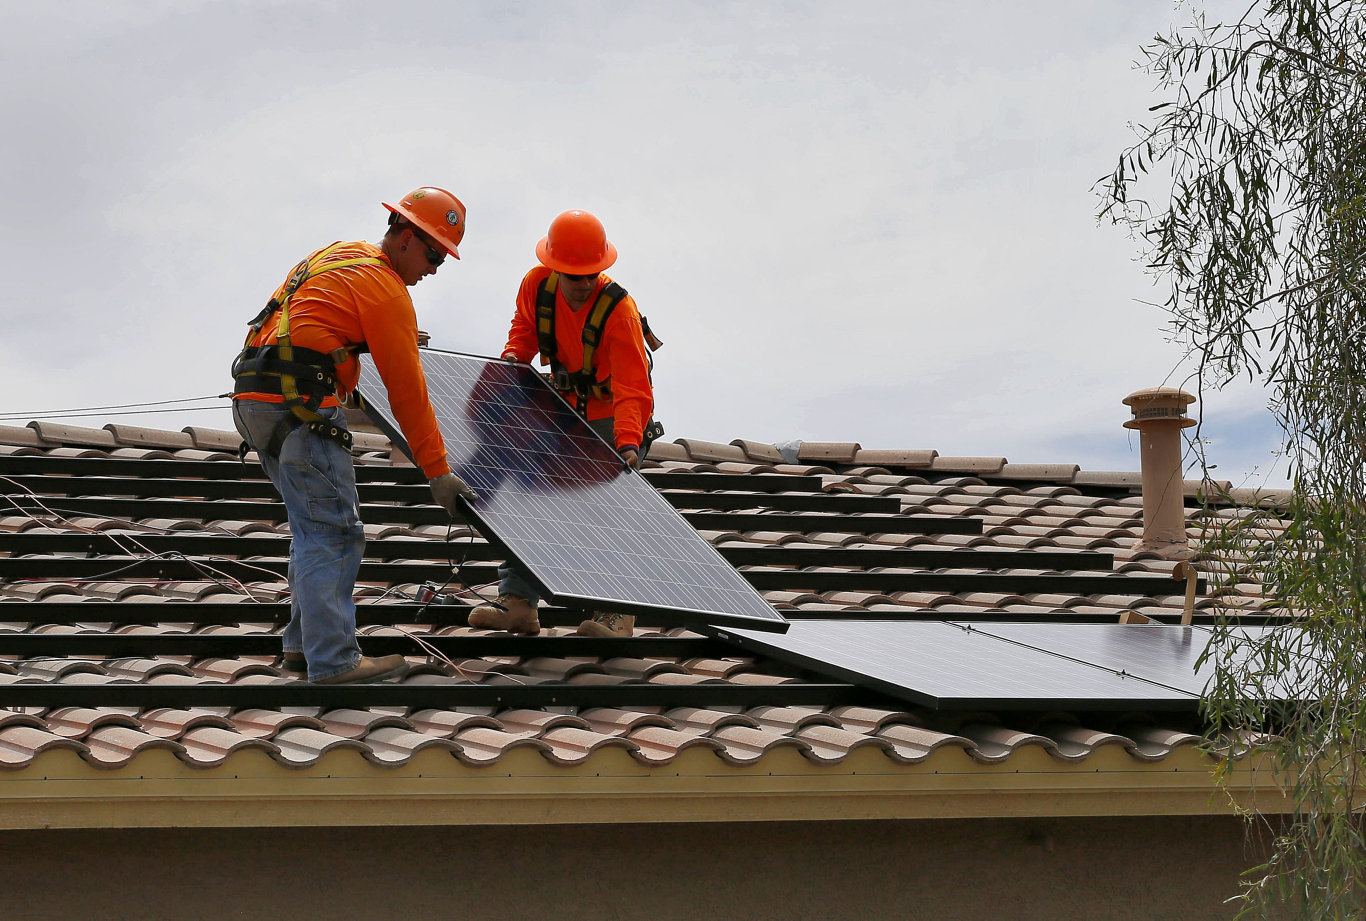 The NSW Government's free solar roll-out scheme is being trialled across the state.